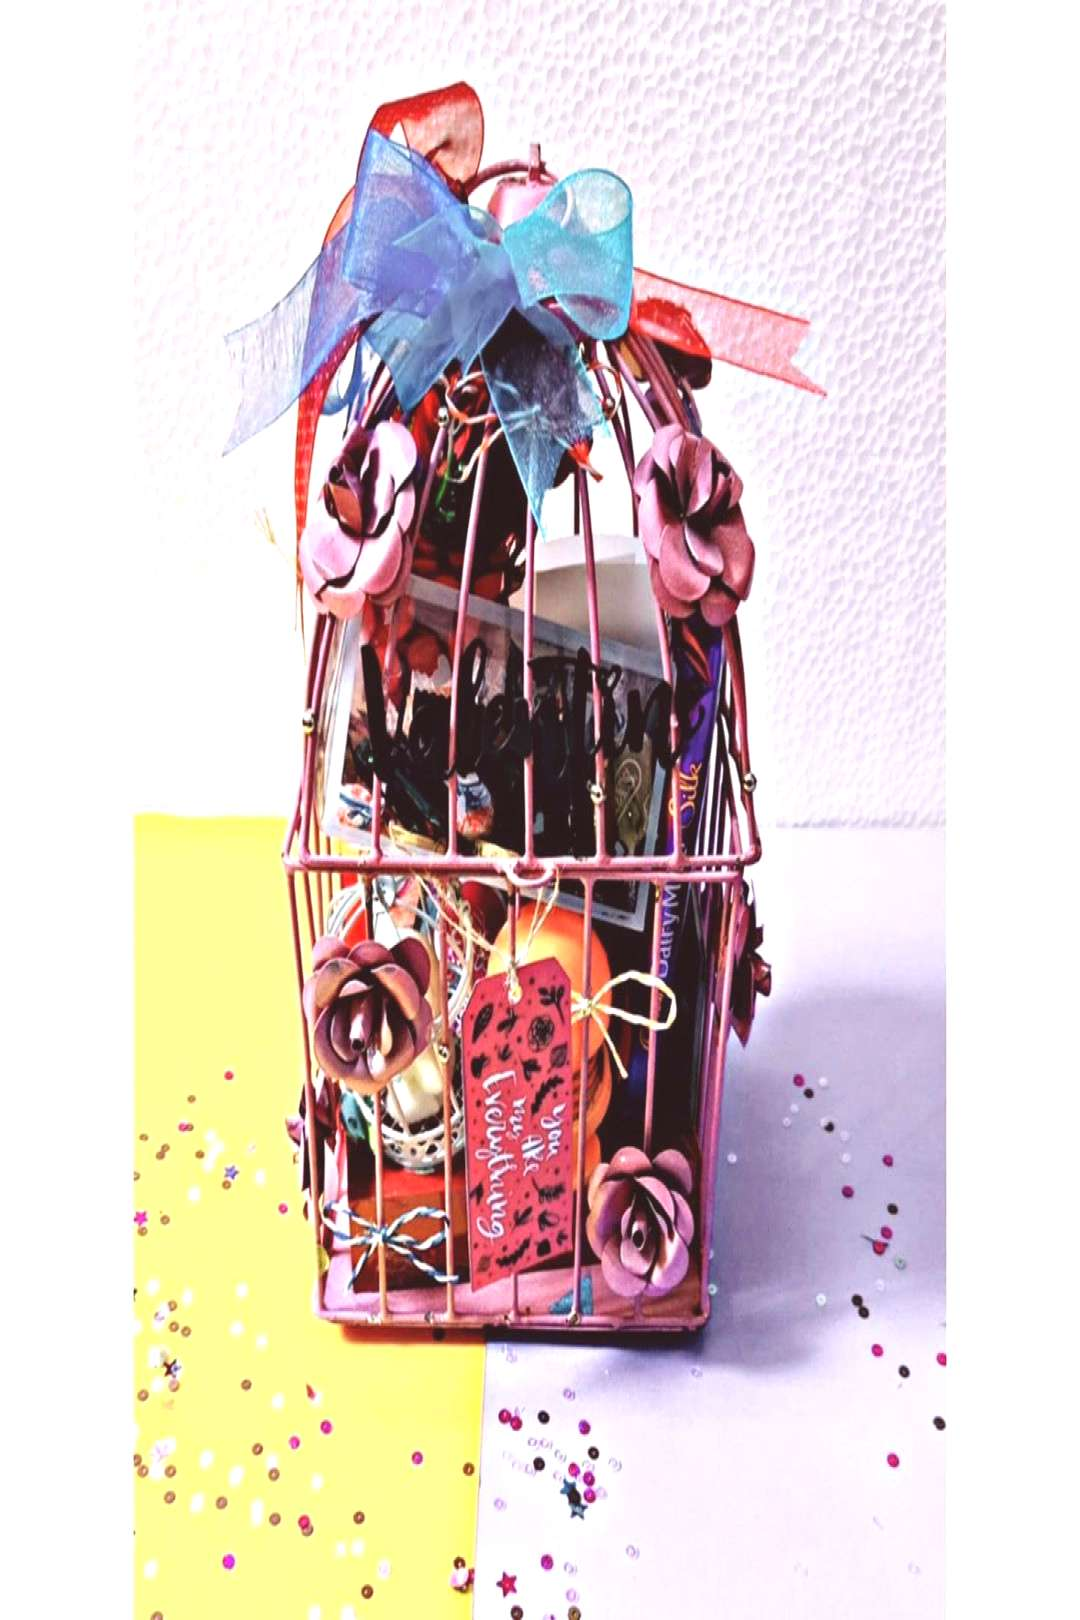 11 inches cage { Available in more sizes} Cage full of tiny gifts